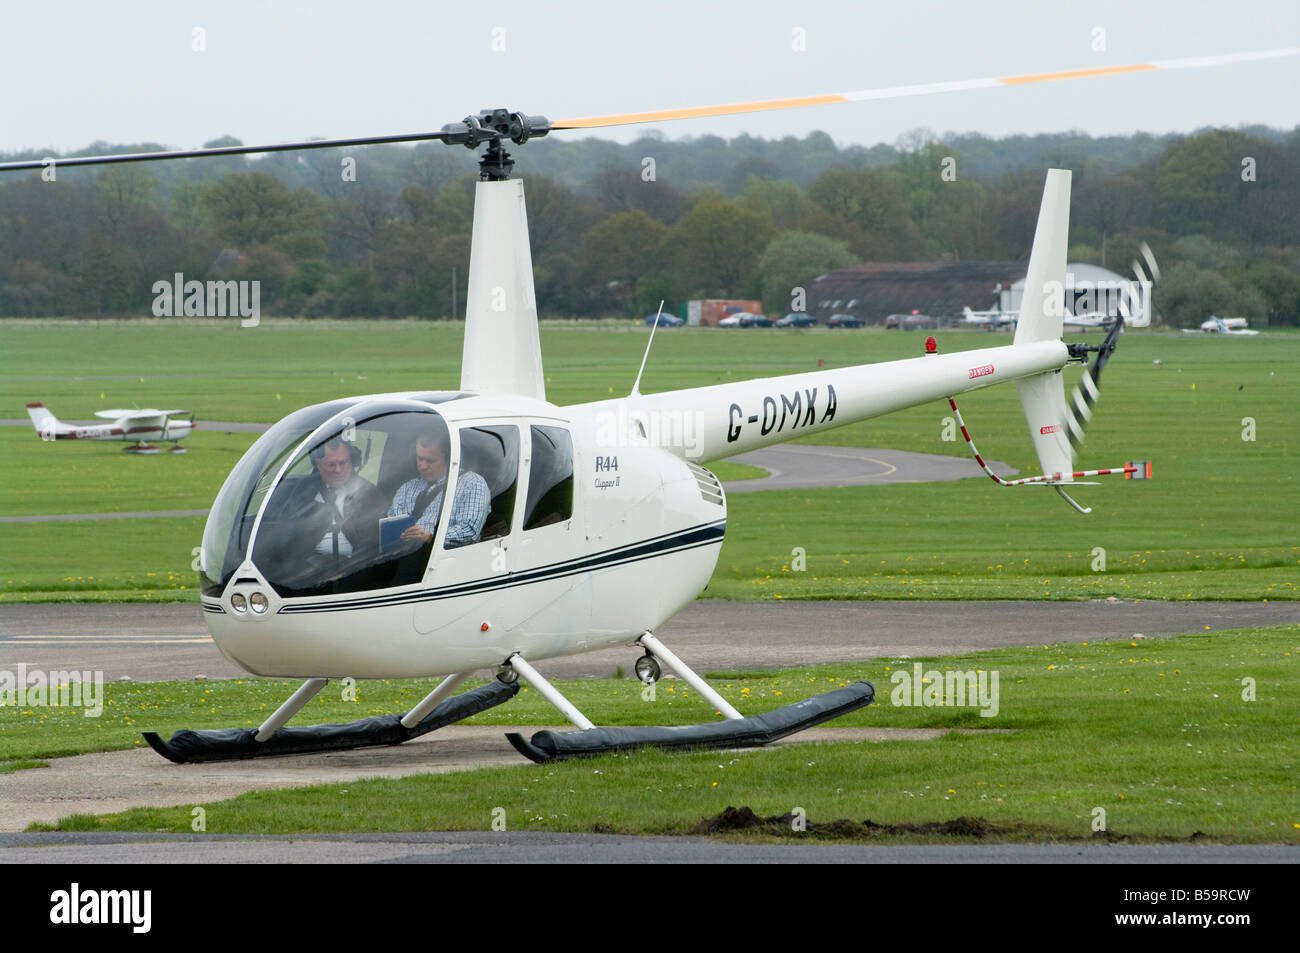 Small Helicopter Stock Photos & Small Helicopter Stock